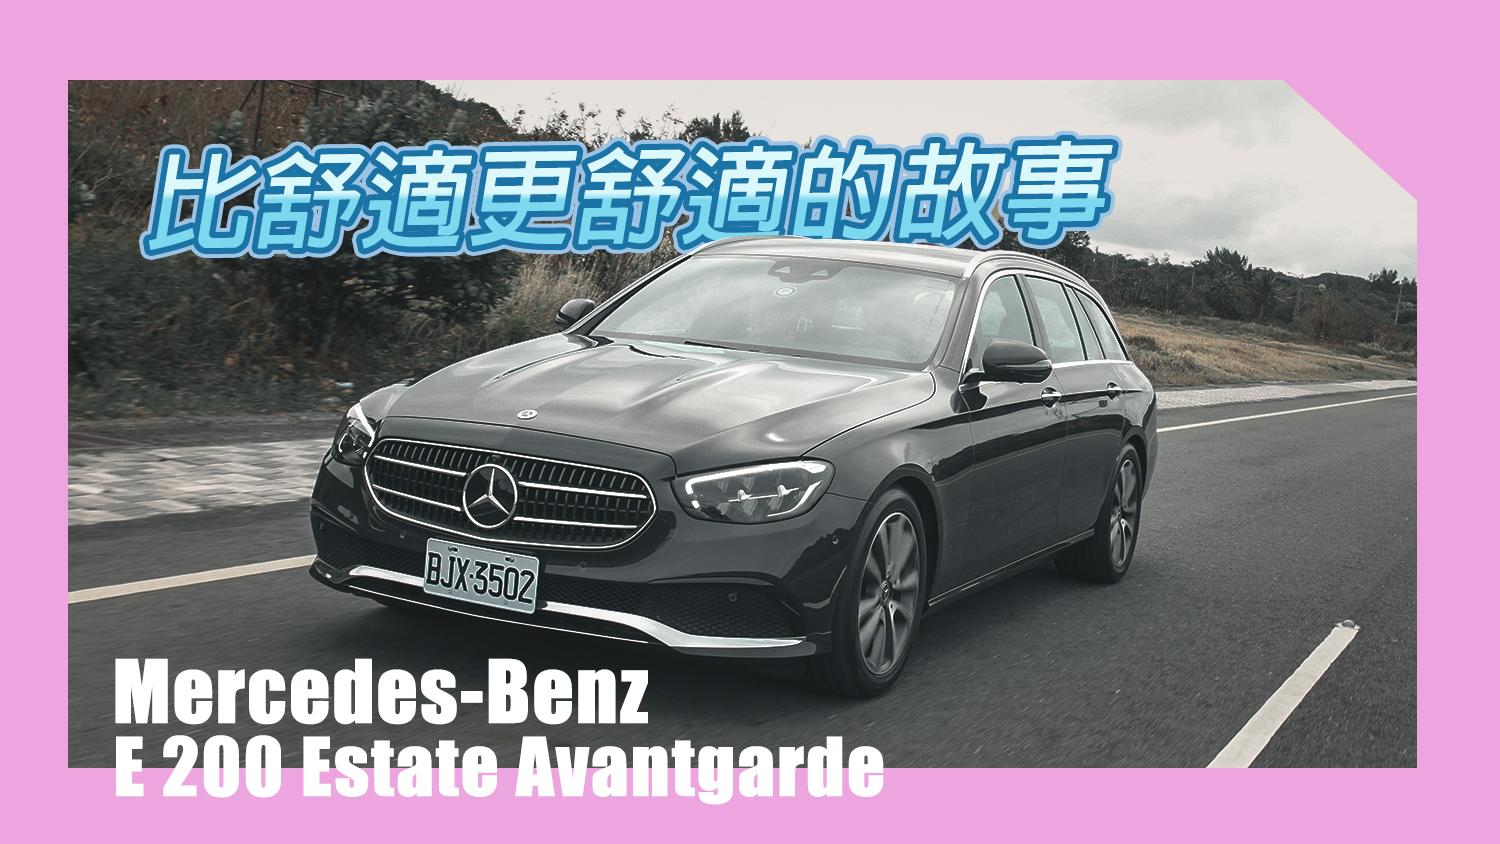 舒適有感 豪華進化 Mercedes-Benz E 200 Estate Avantgarde